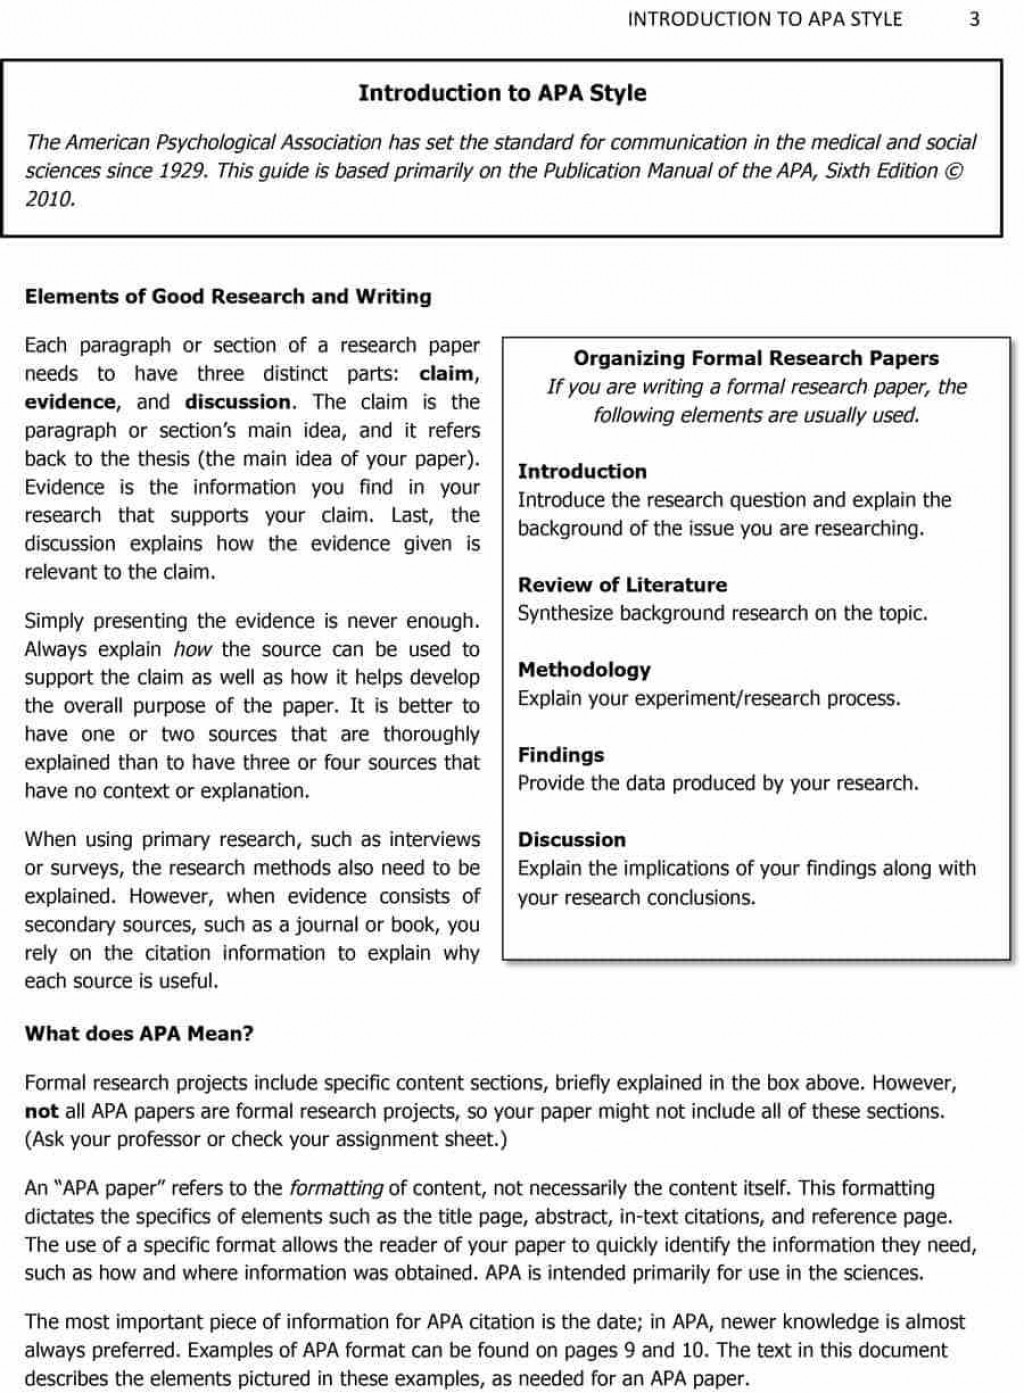 015 Apa Format Research Paper Word Template Incredible Large